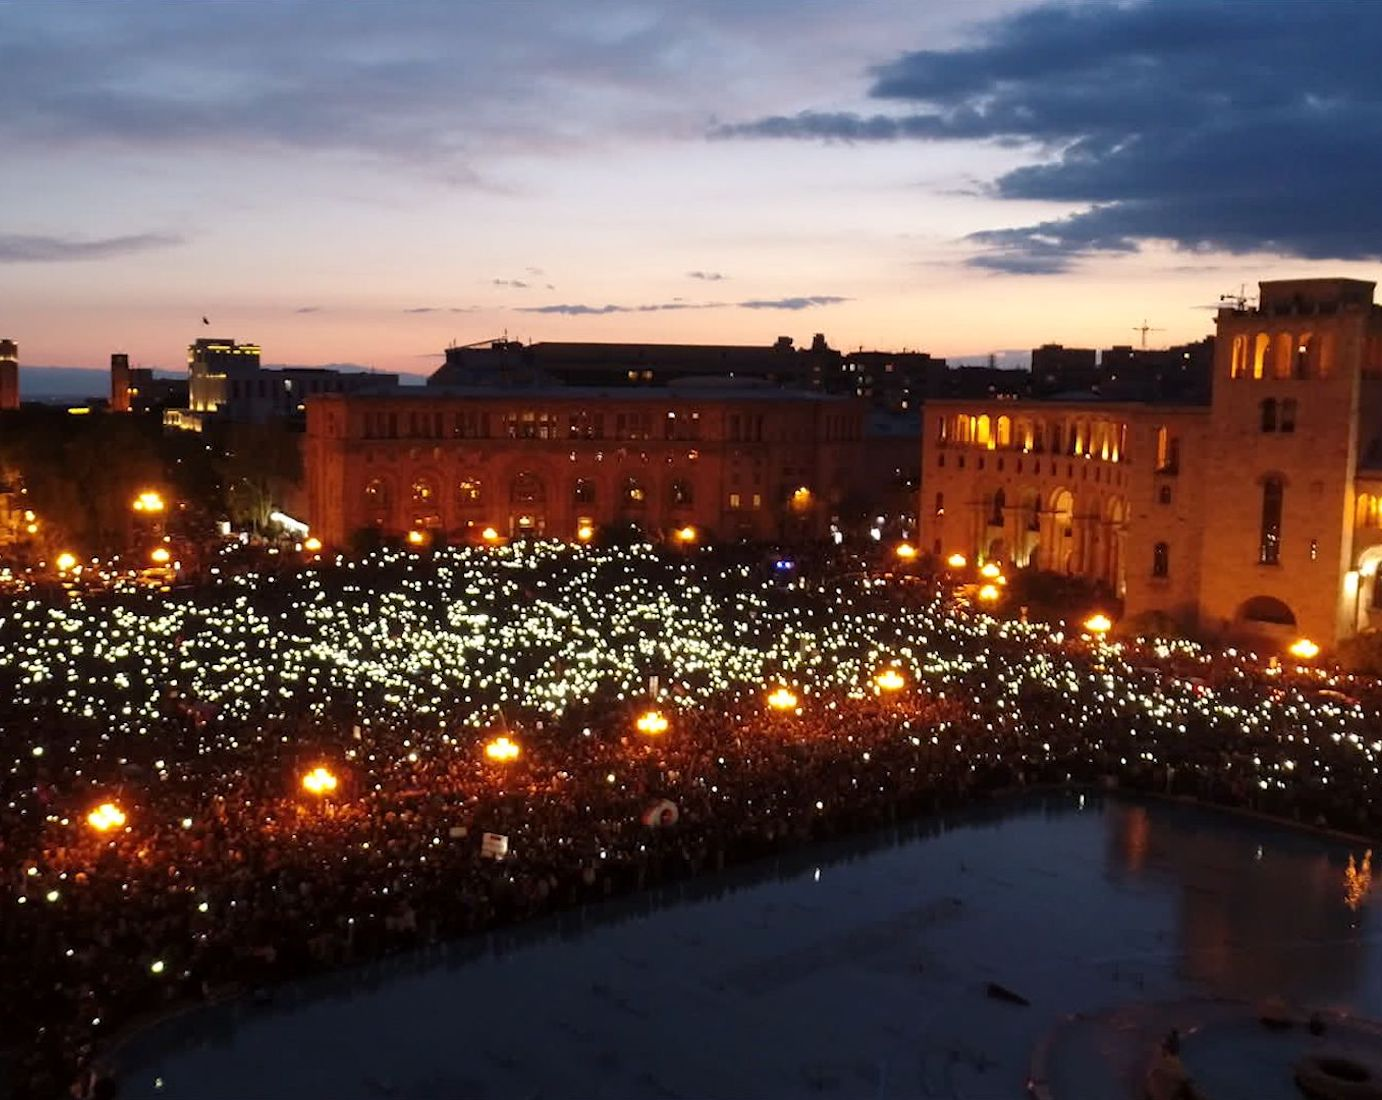 Armenia's Velvet Revolution ignited imaginations. This documentary celebrates its triumph